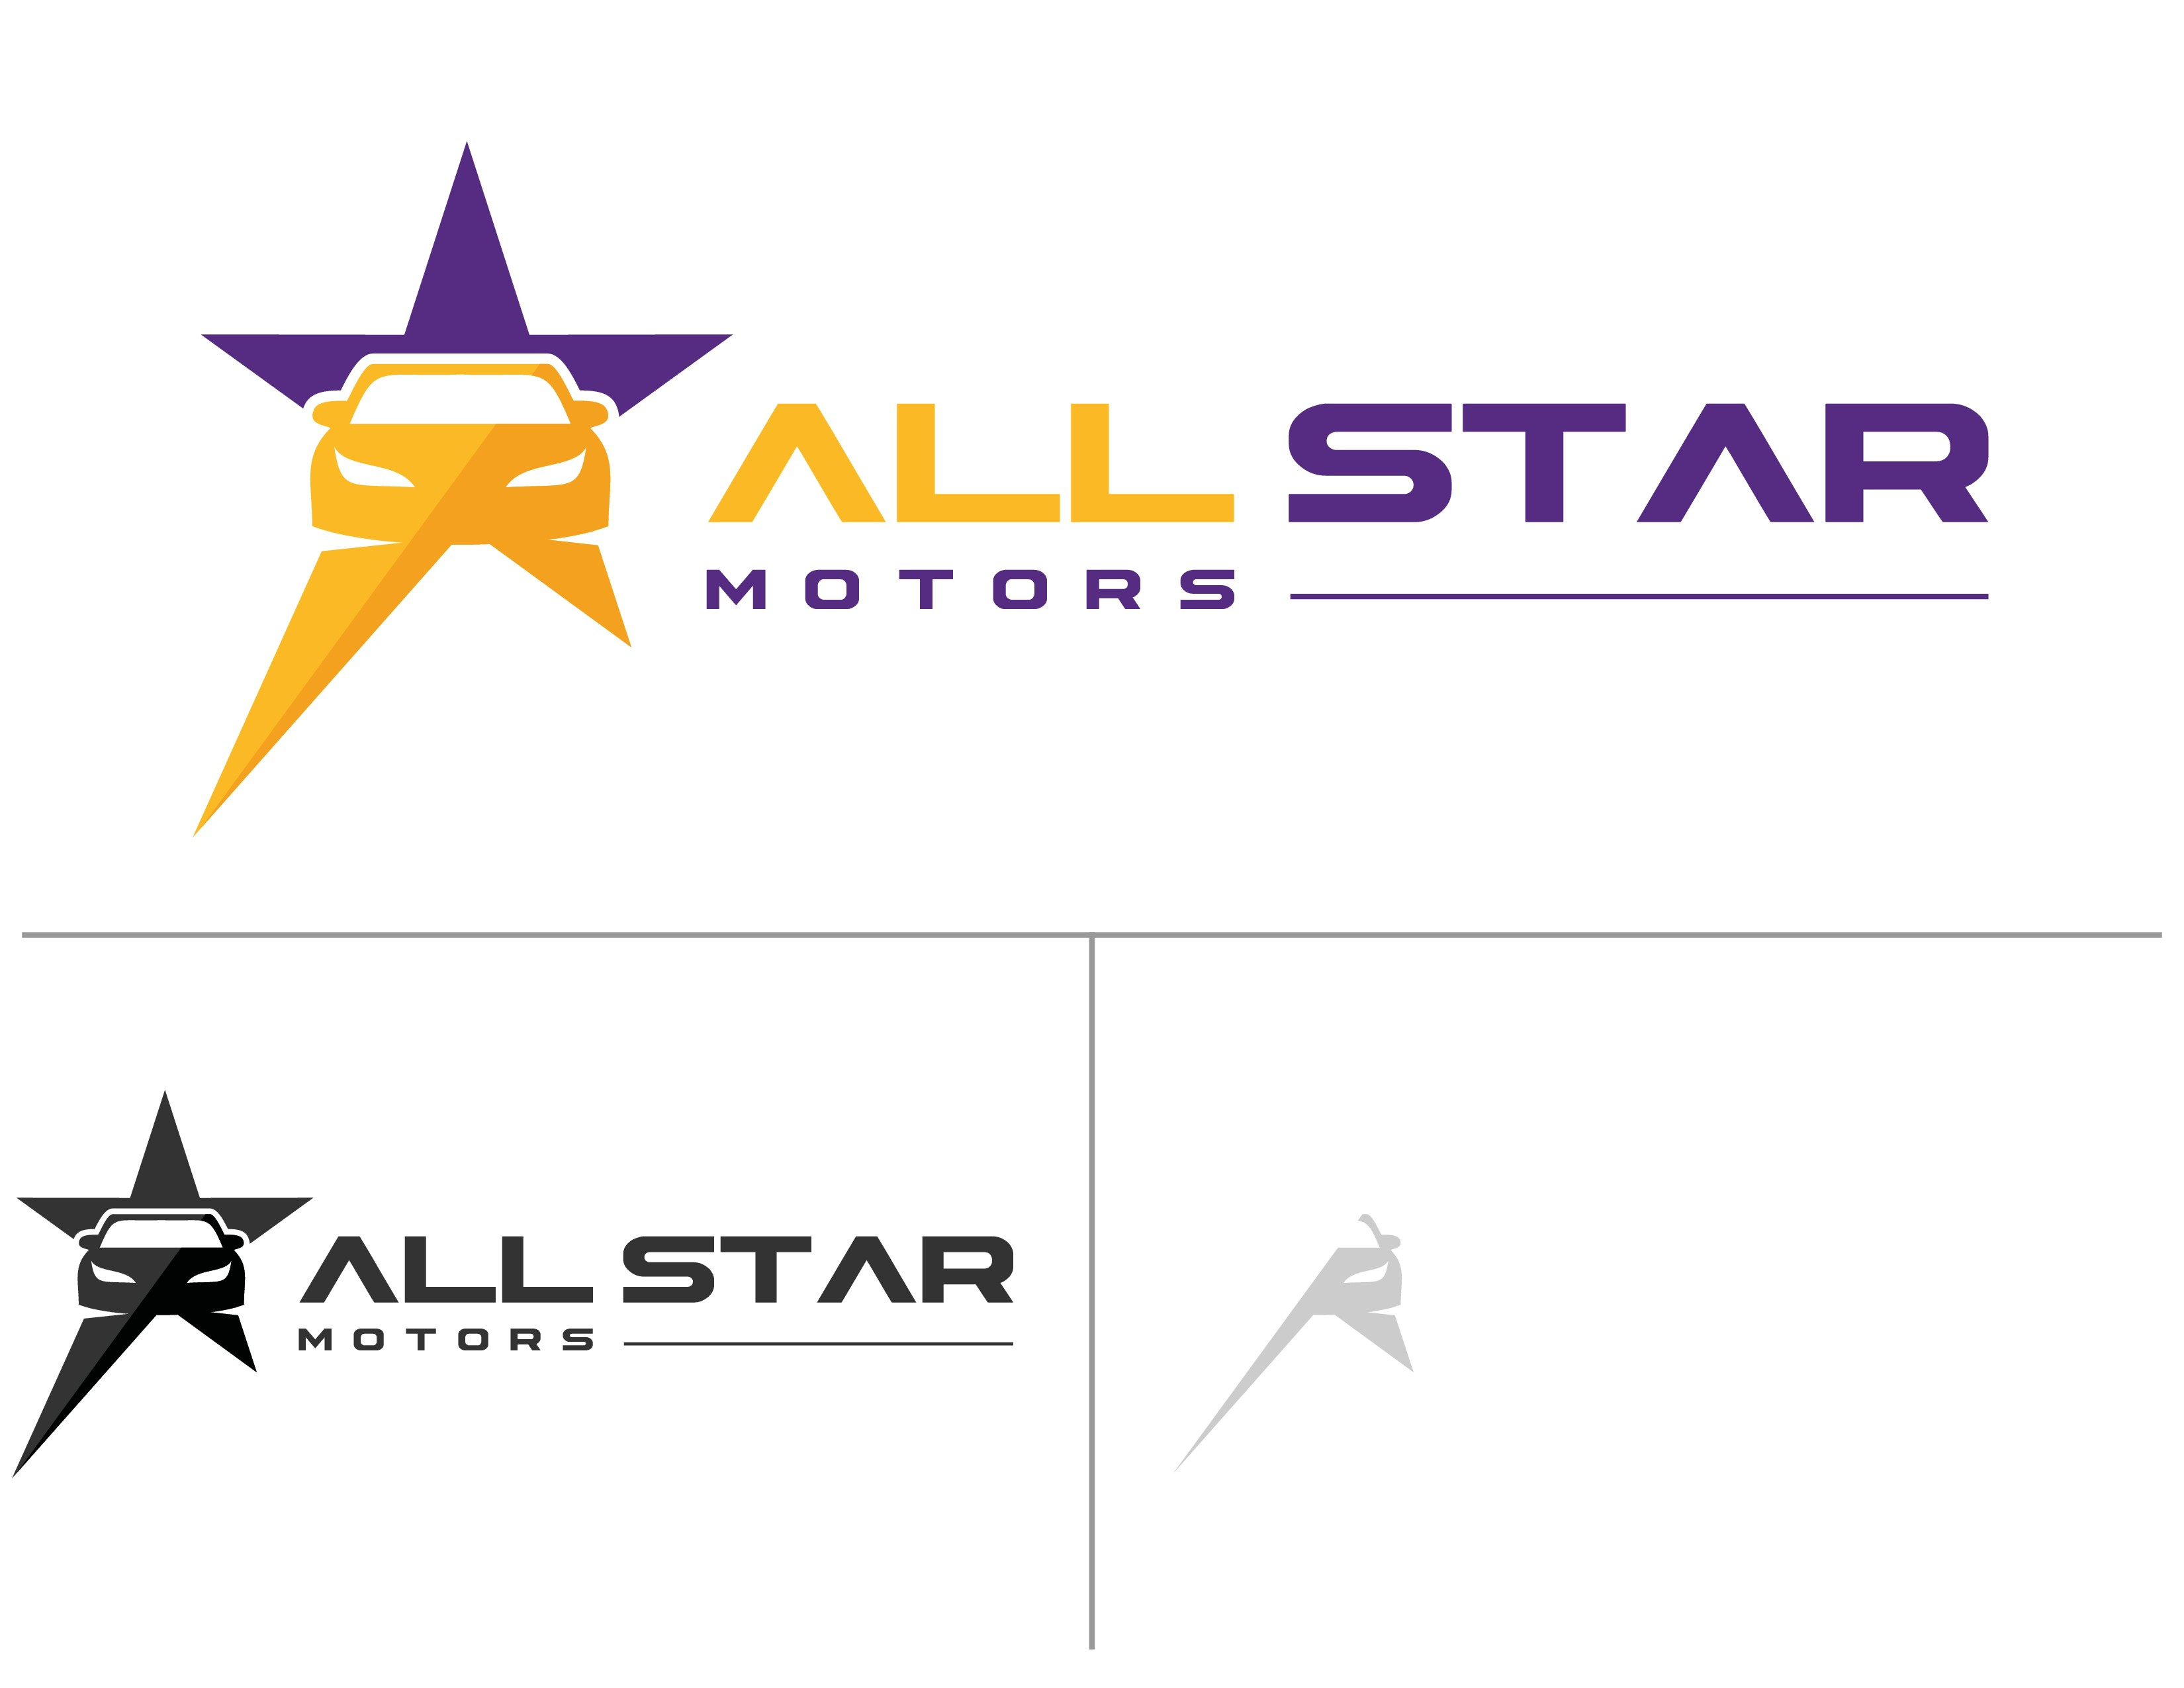 Create a cool new logo for a used car dealership - All-Star Motors